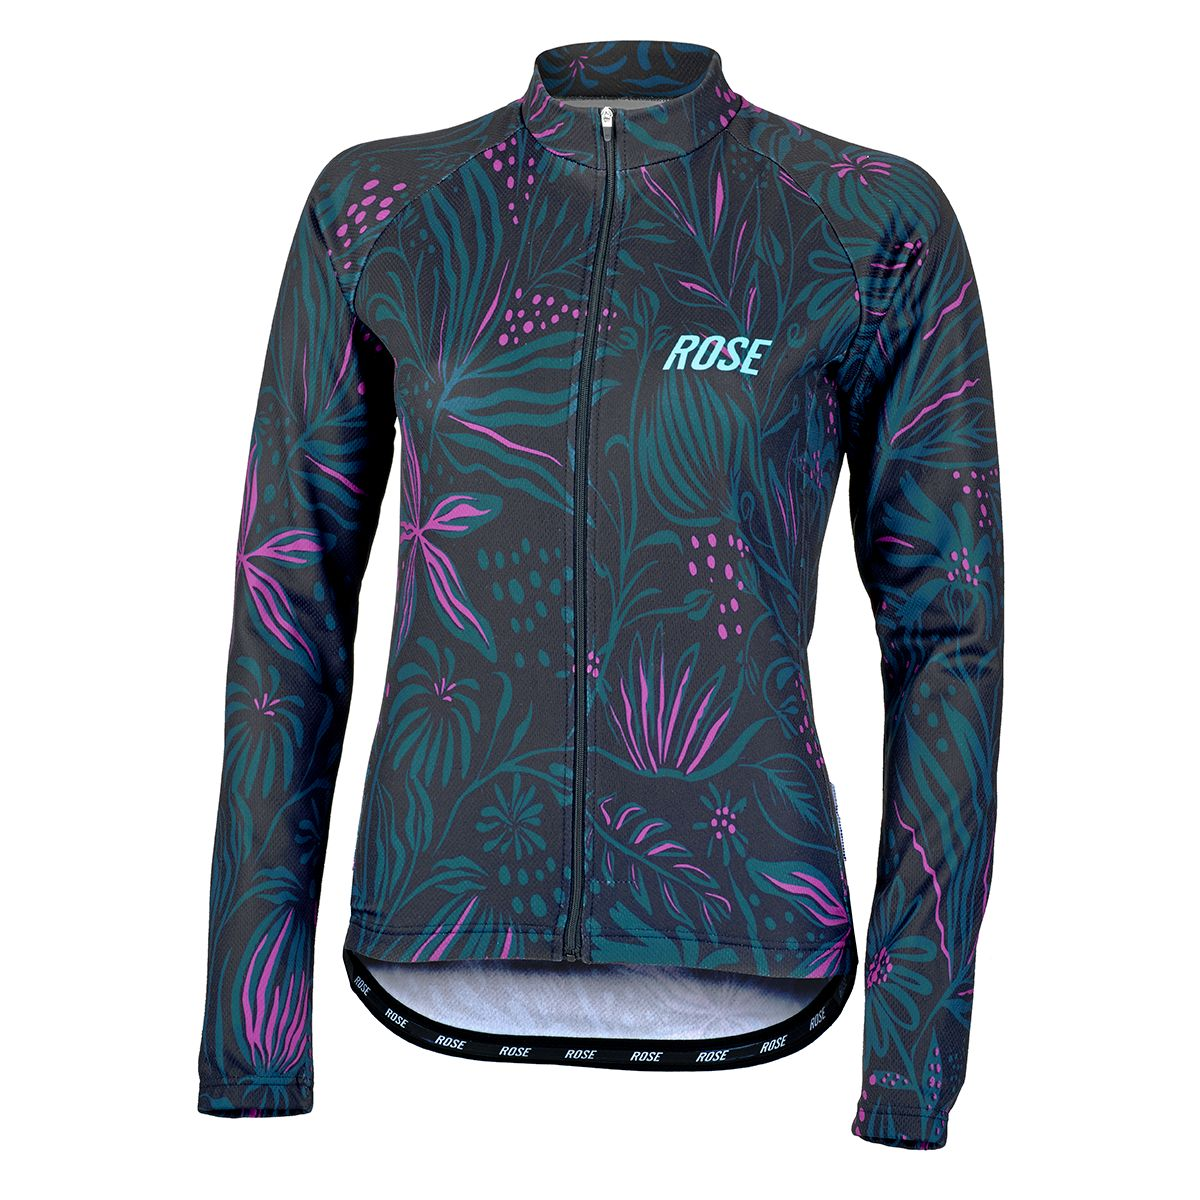 FLOWER THERMO Long Sleeve Jersey for Women